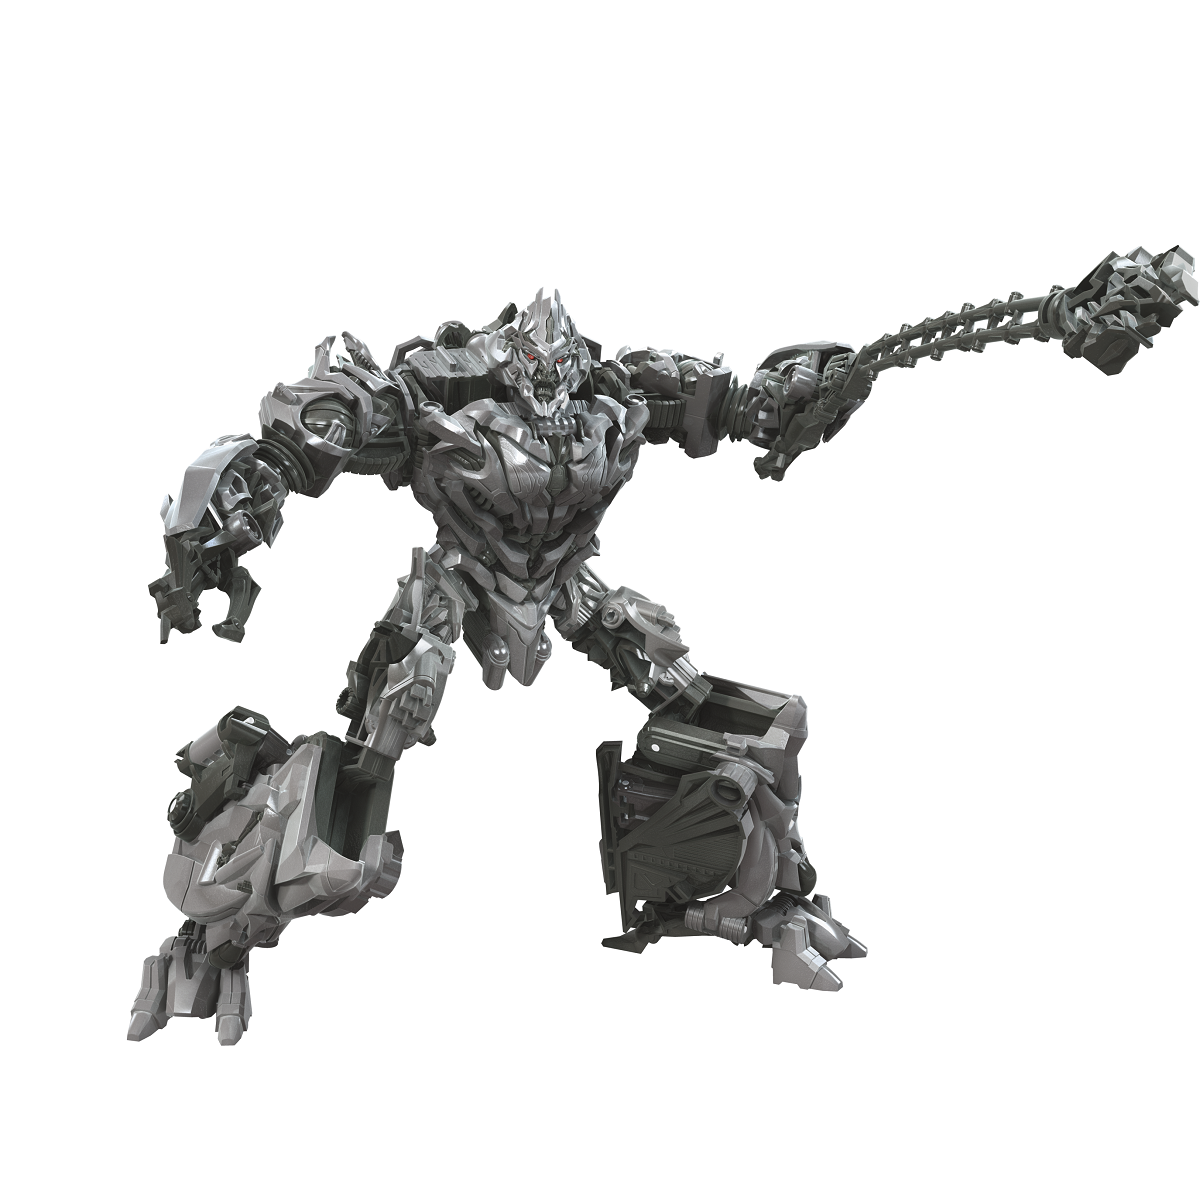 Hasbro unveils new Transformers action figures at Fan Expo Canada